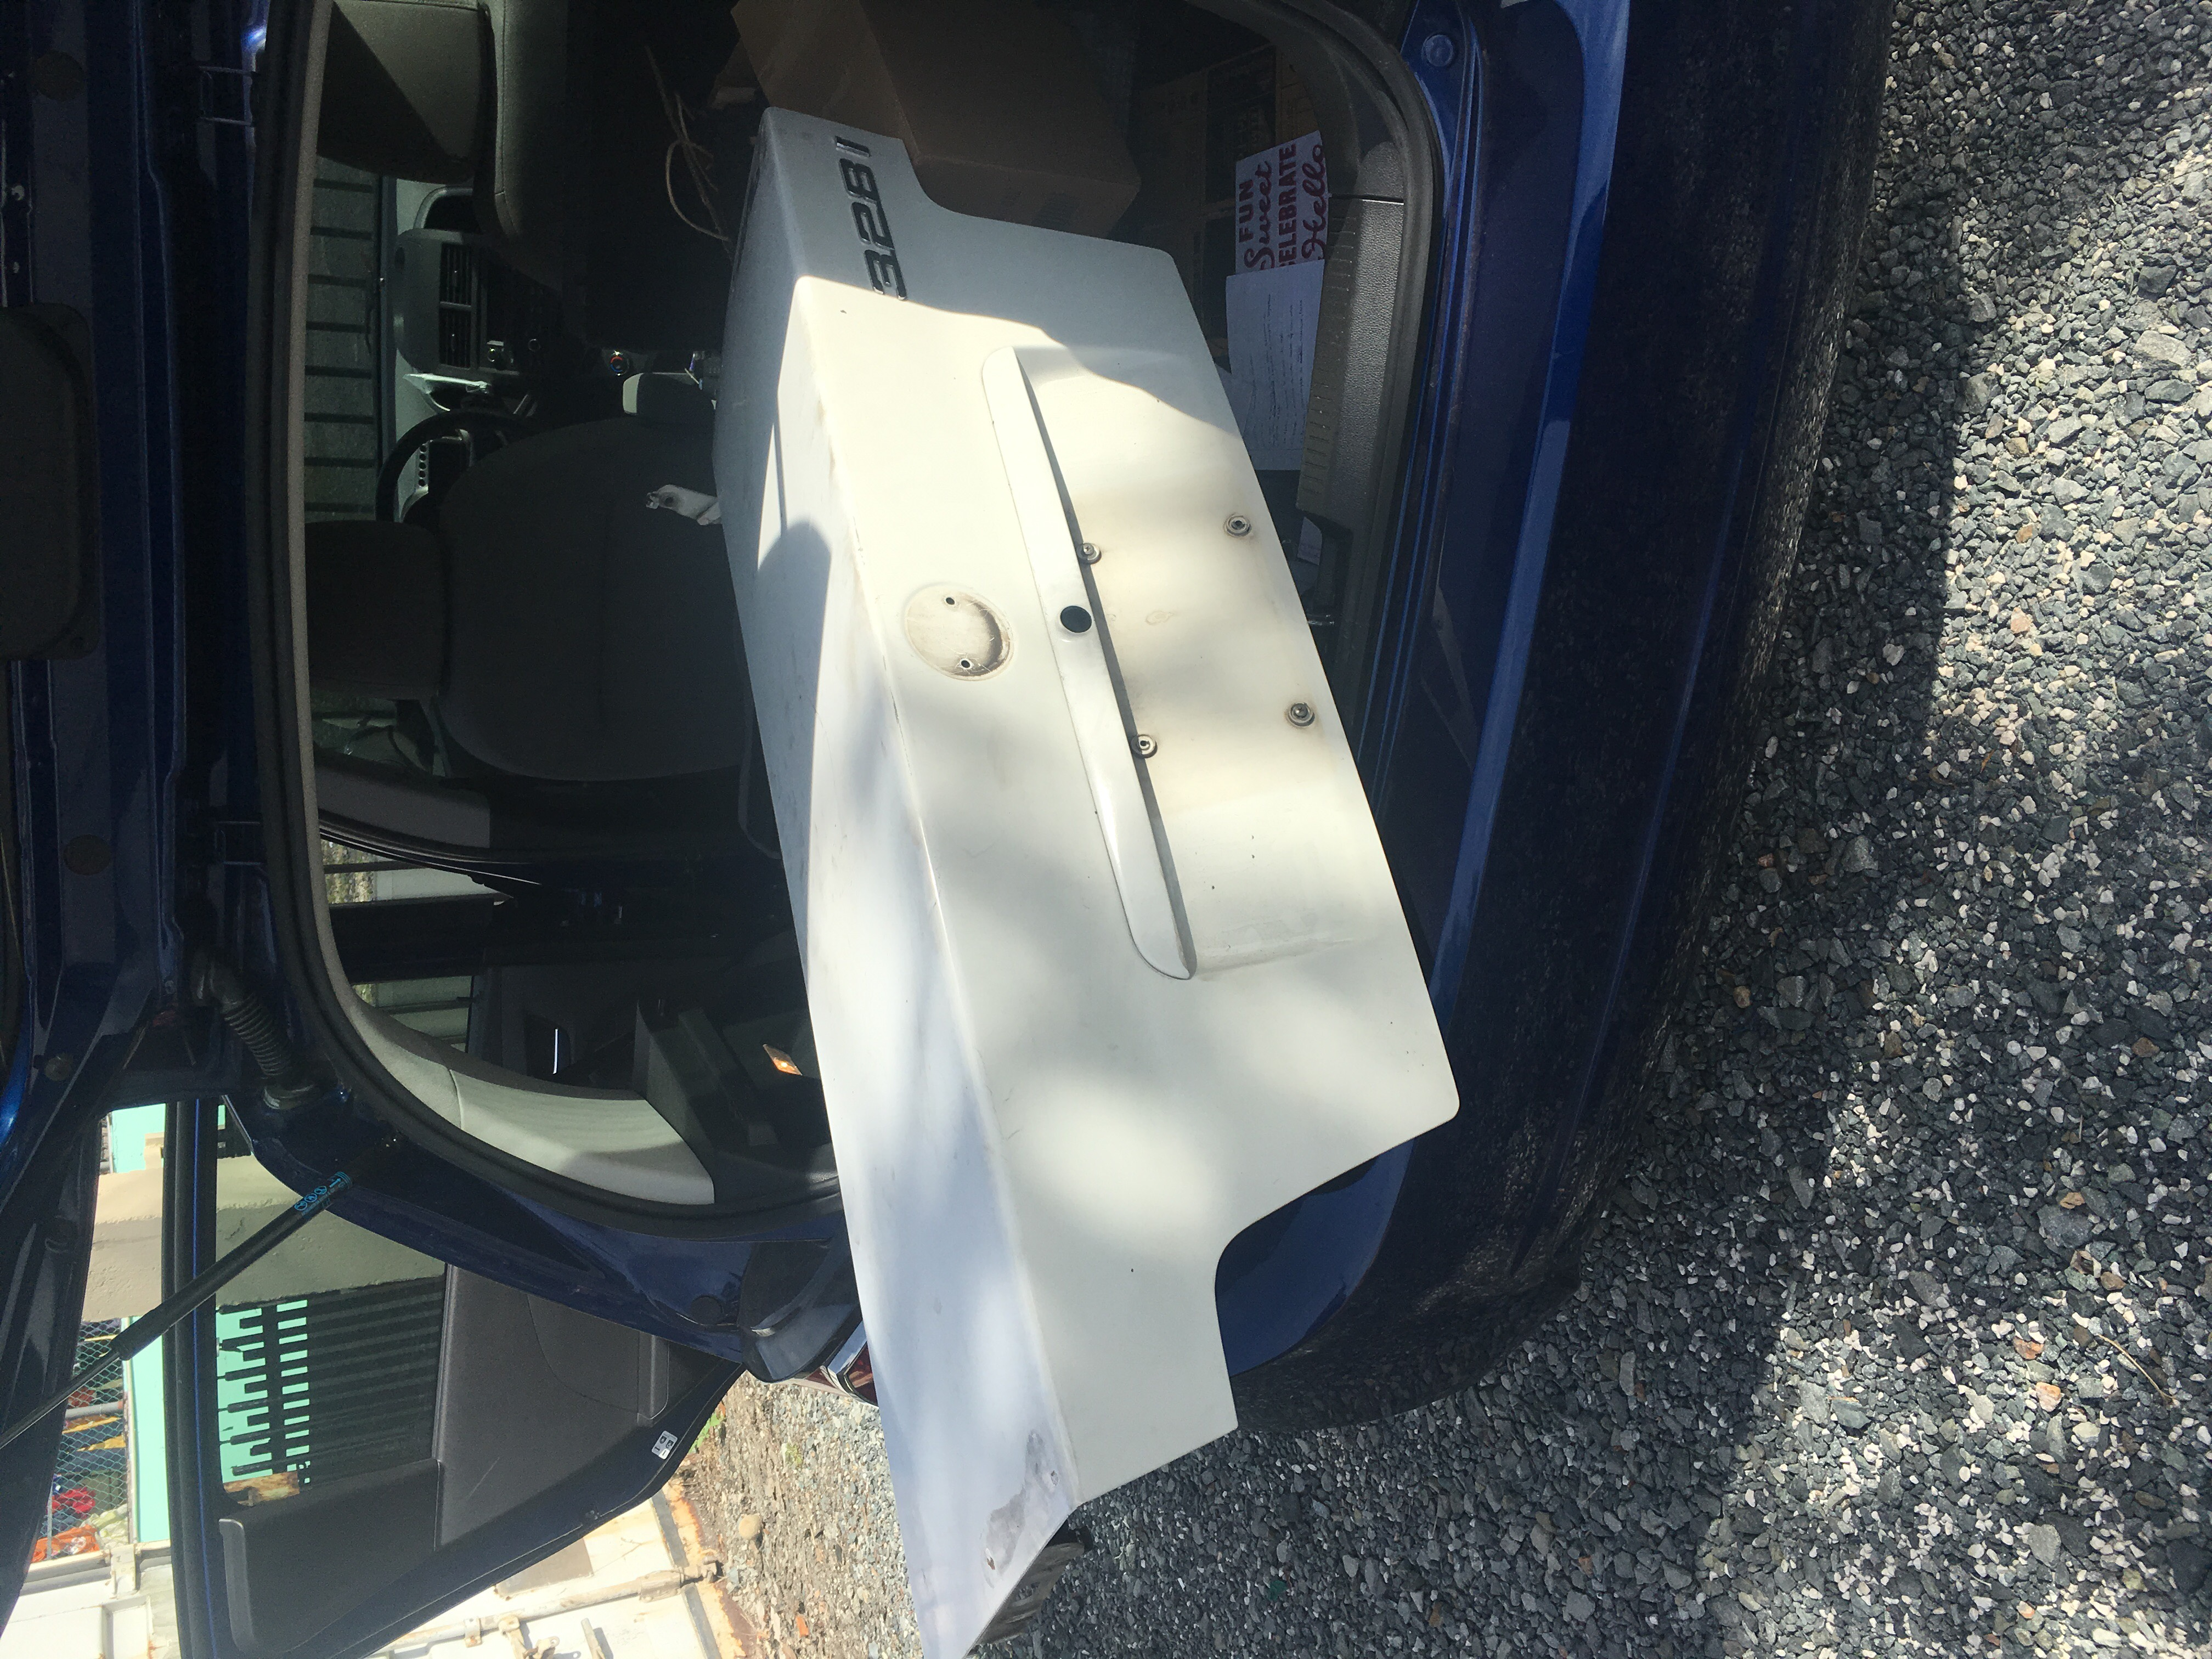 New rust free trunk lid for my E36